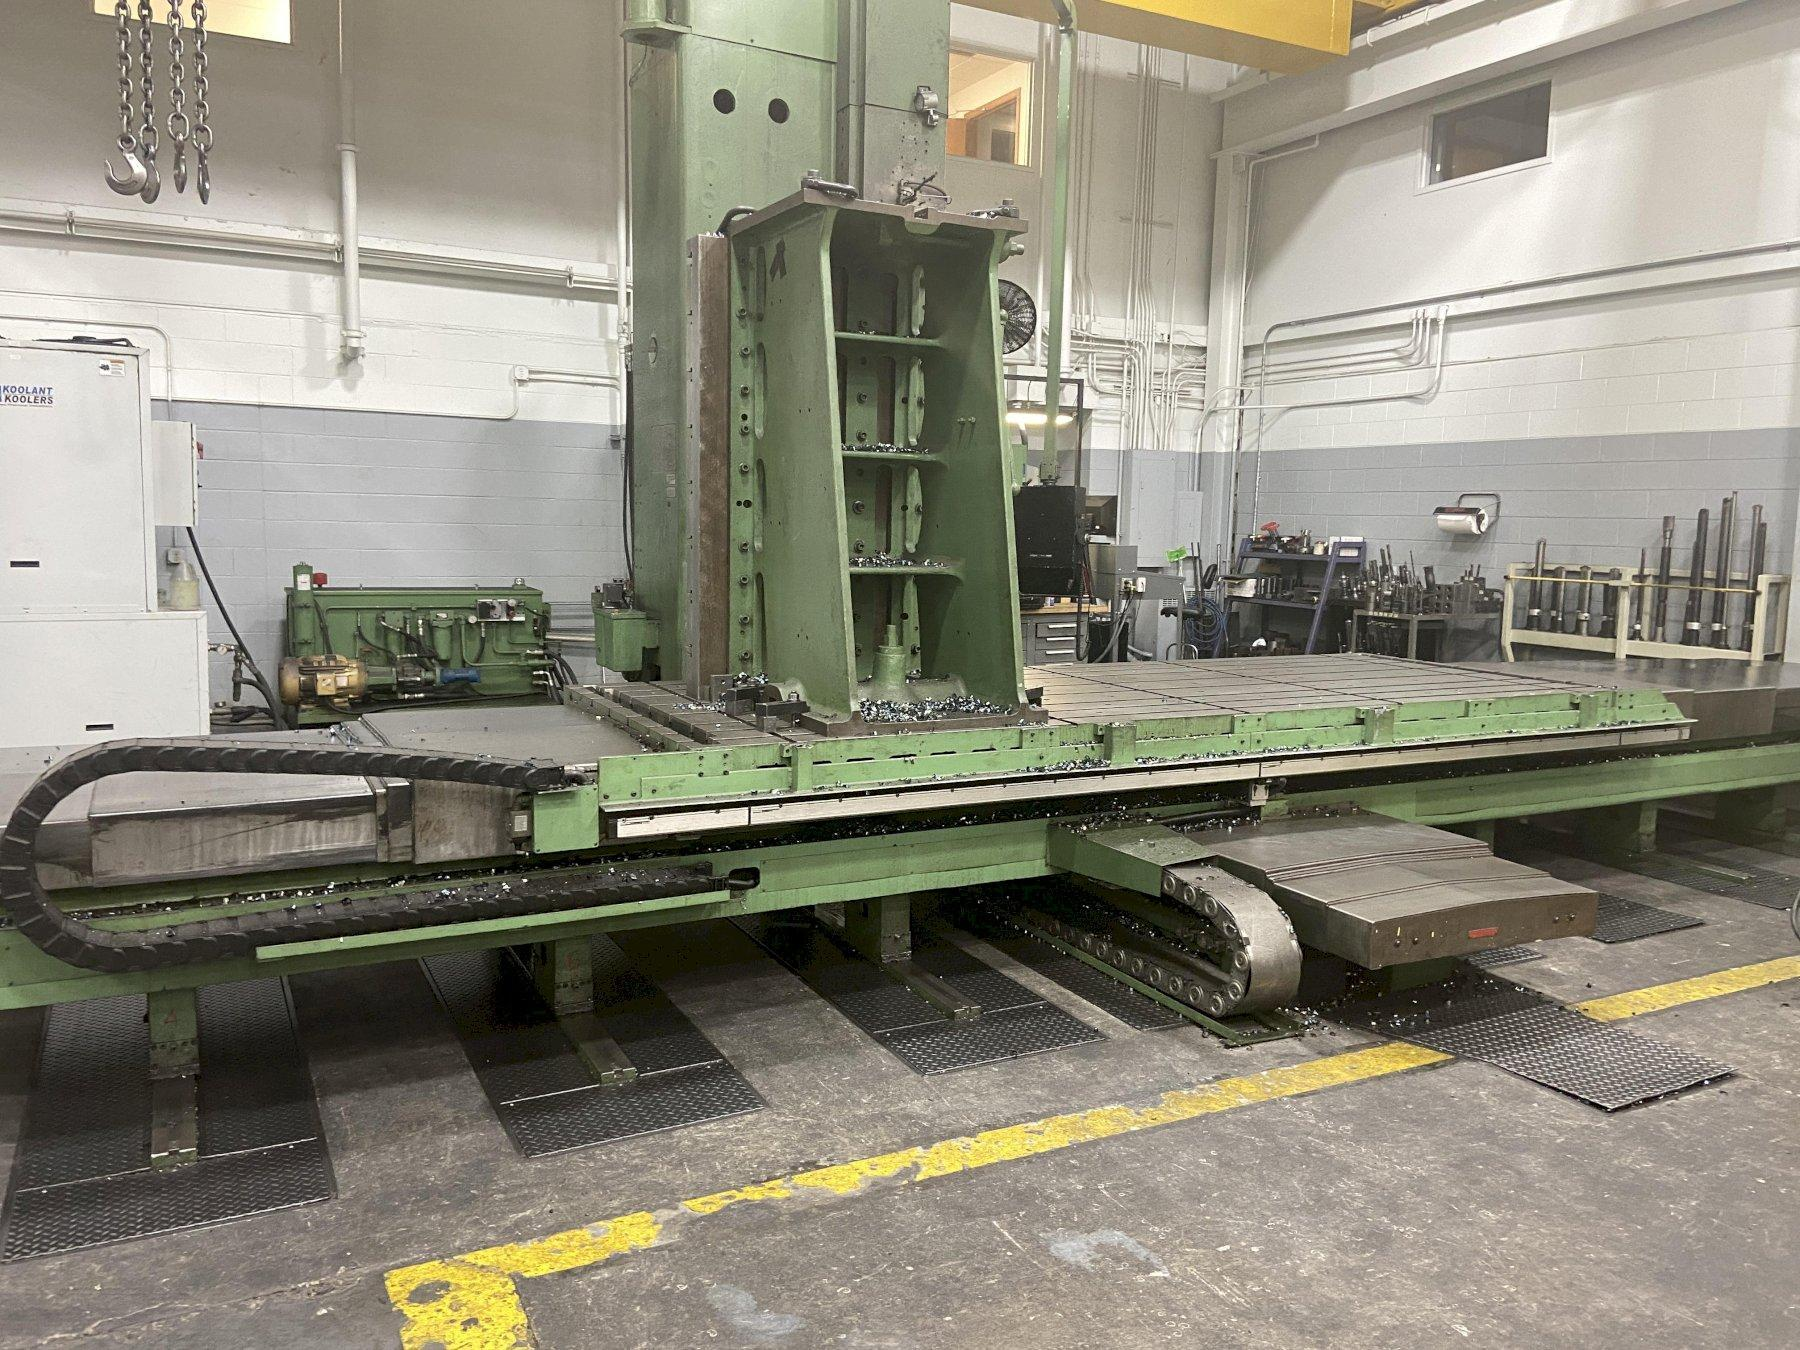 "5"" Giddings & Lewis CNC Table-Type Boring Mill, Fidia C-20 Control, 148""/86""/33"" Travels, 60K Lb Cap, CT50, New Screws/Bearings ('15), New Chiller ('15), 1991"